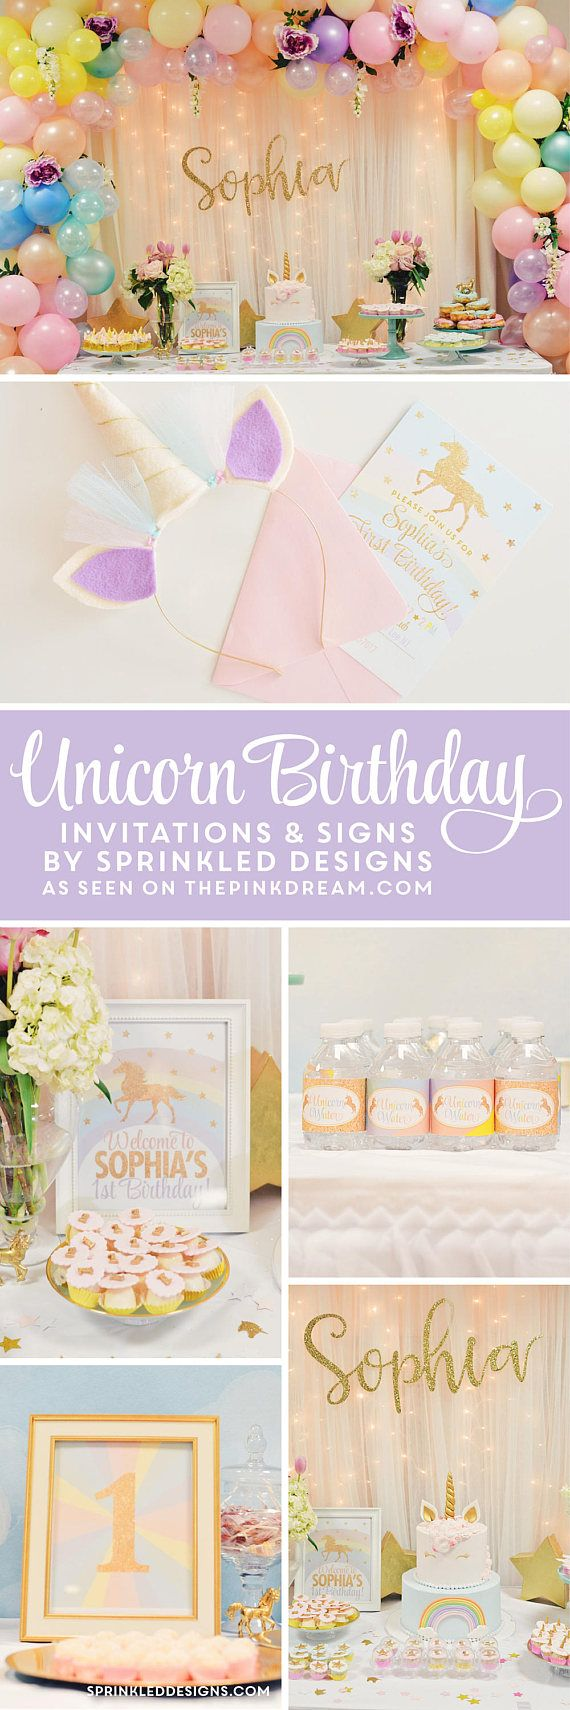 Unicorn Birthday Invitation Unicorn Invitation Unicorn Party